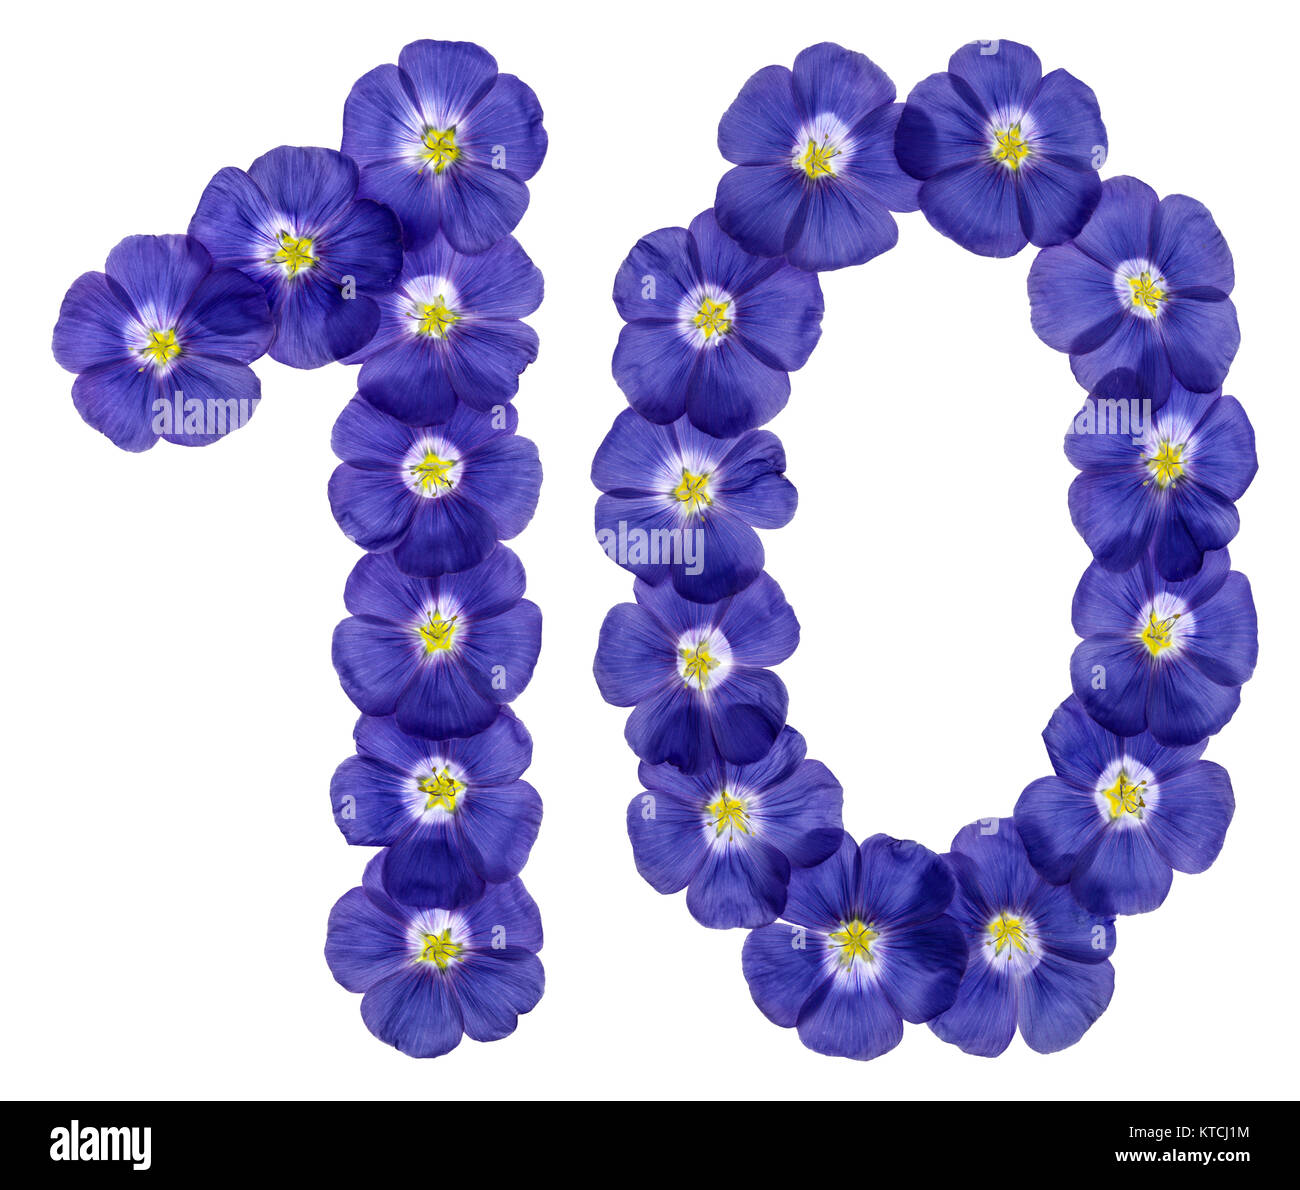 Arabic numeral 10, ten, from blue flowers of flax, isolated on white background Stock Photo